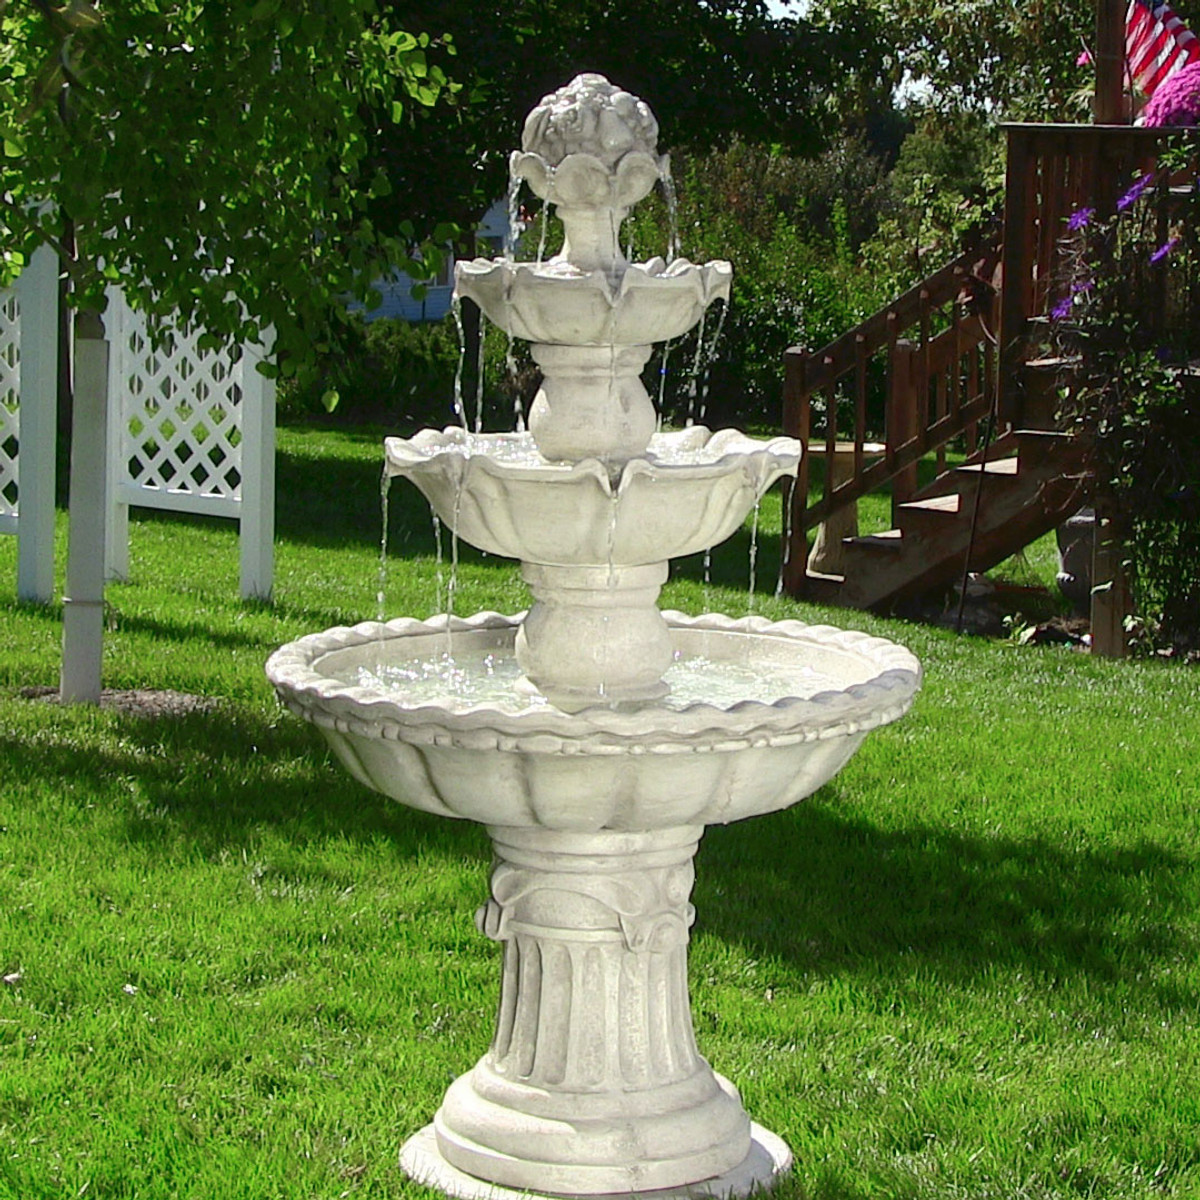 97c82fddd6b Sunnydaze Four-Tier White Electric Water Fountain with Fruit Top